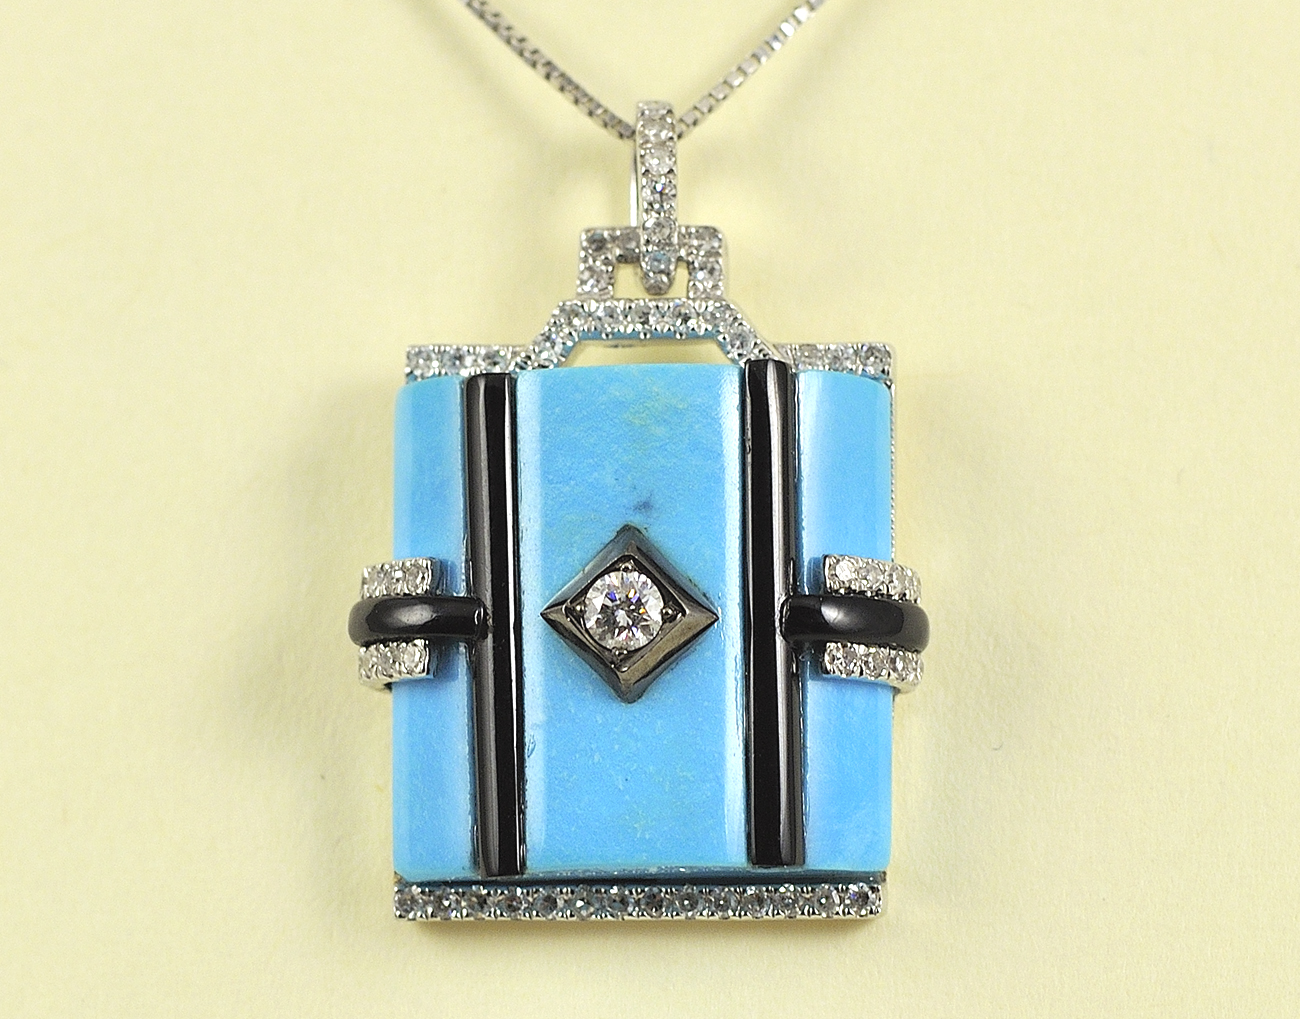 Unique 14K White Gold Turquoise, Onyx, and Diamond Pendant